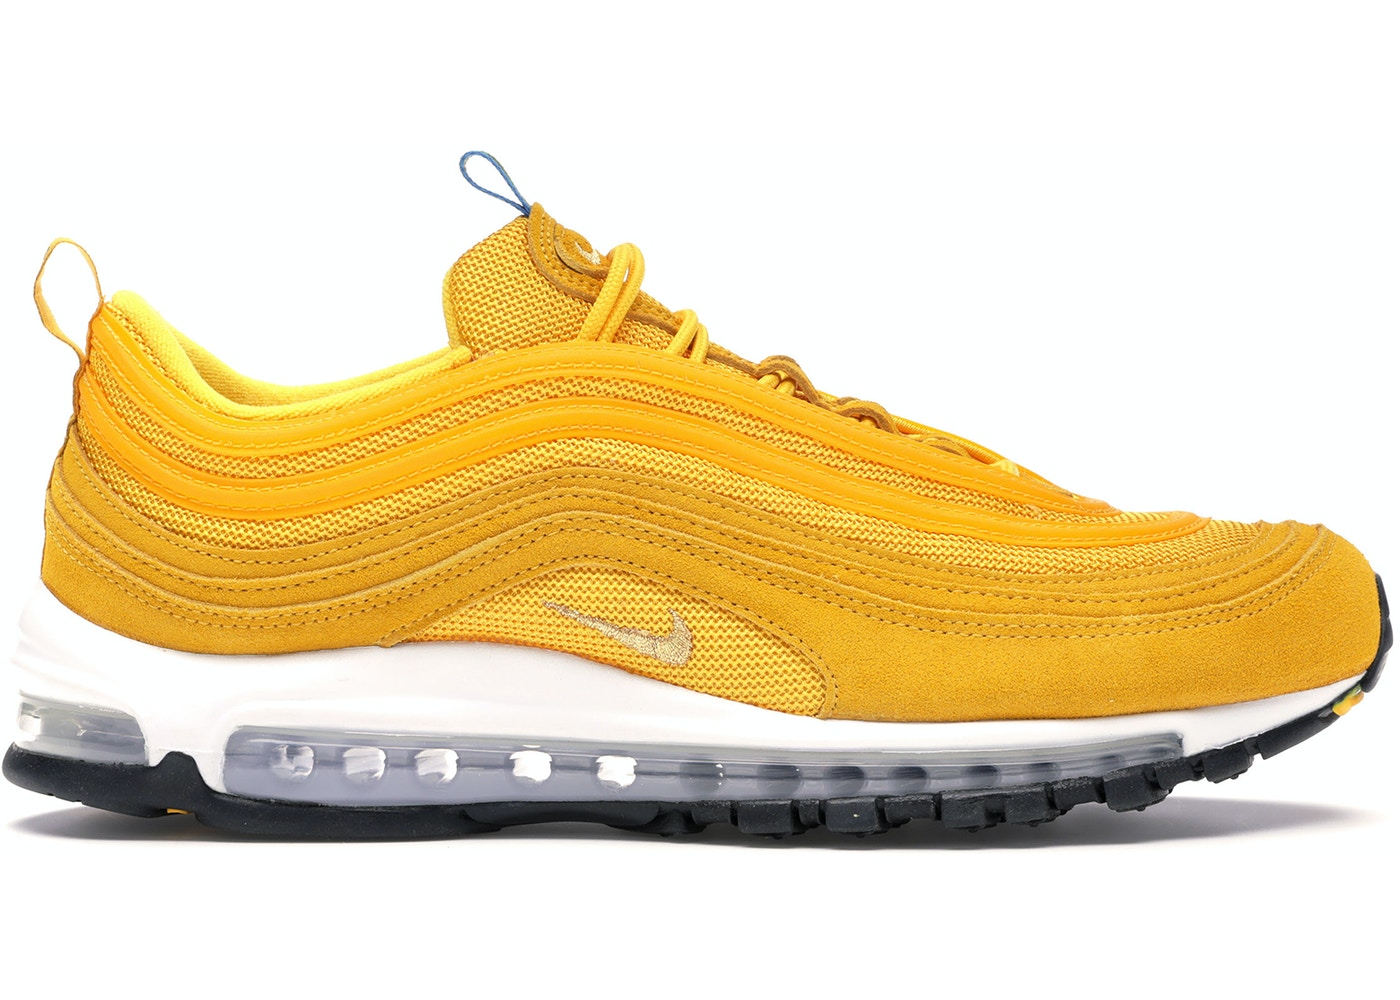 bosquejo Por ahí Frustrante  Nike Air Max 97 Olympic Rings Pack Yellow - CI3708-700